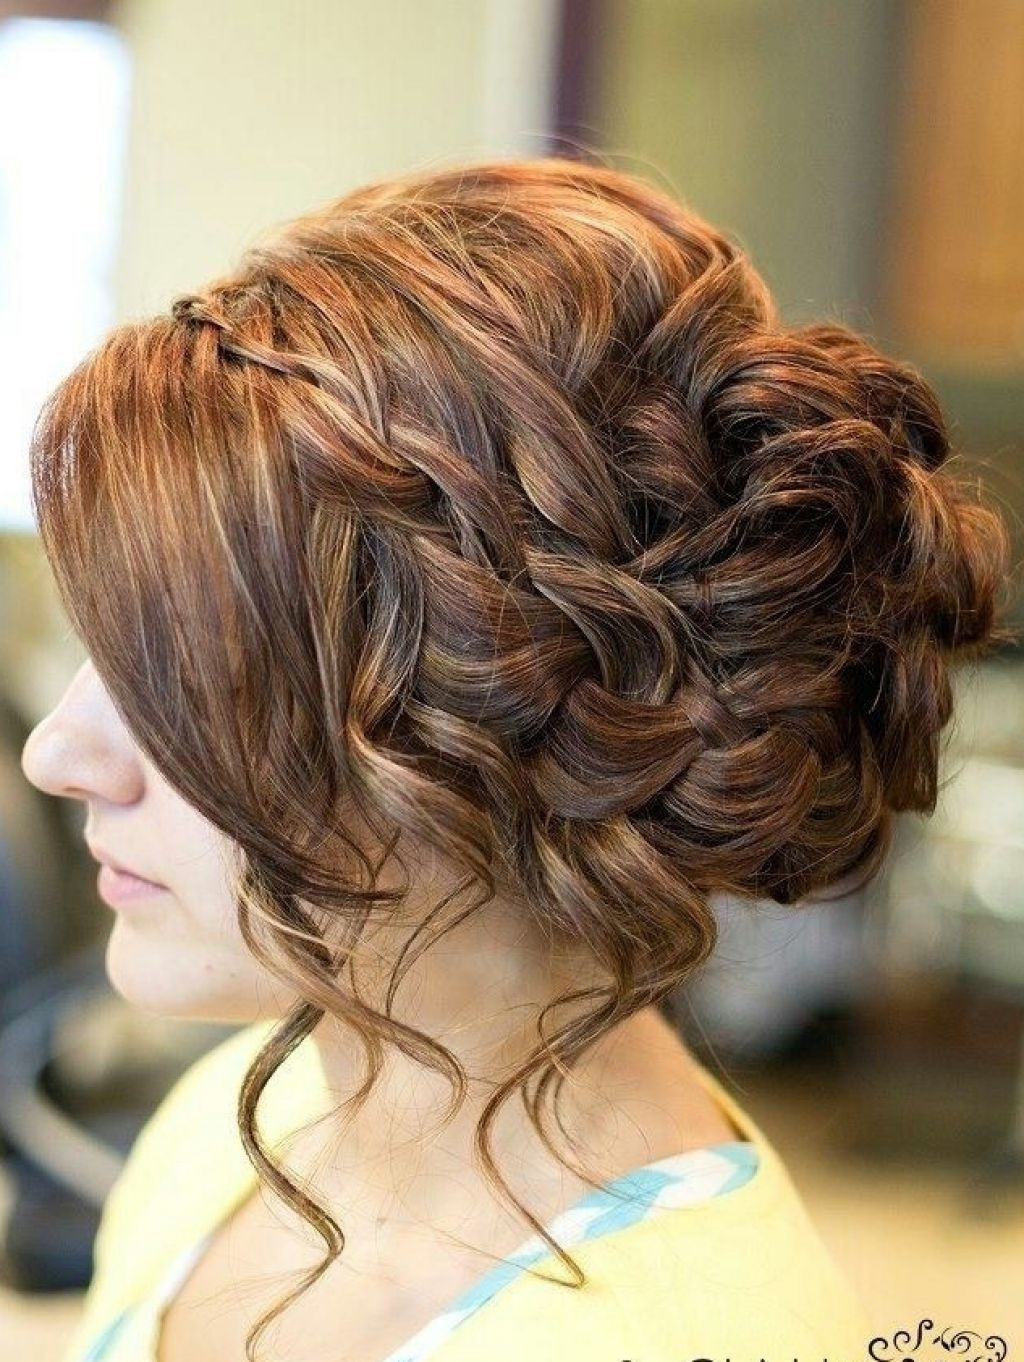 Best ideas about Prom Bun Hairstyles . Save or Pin 14 Prom Hairstyles for Long Hair that are Simply Adorable Now.